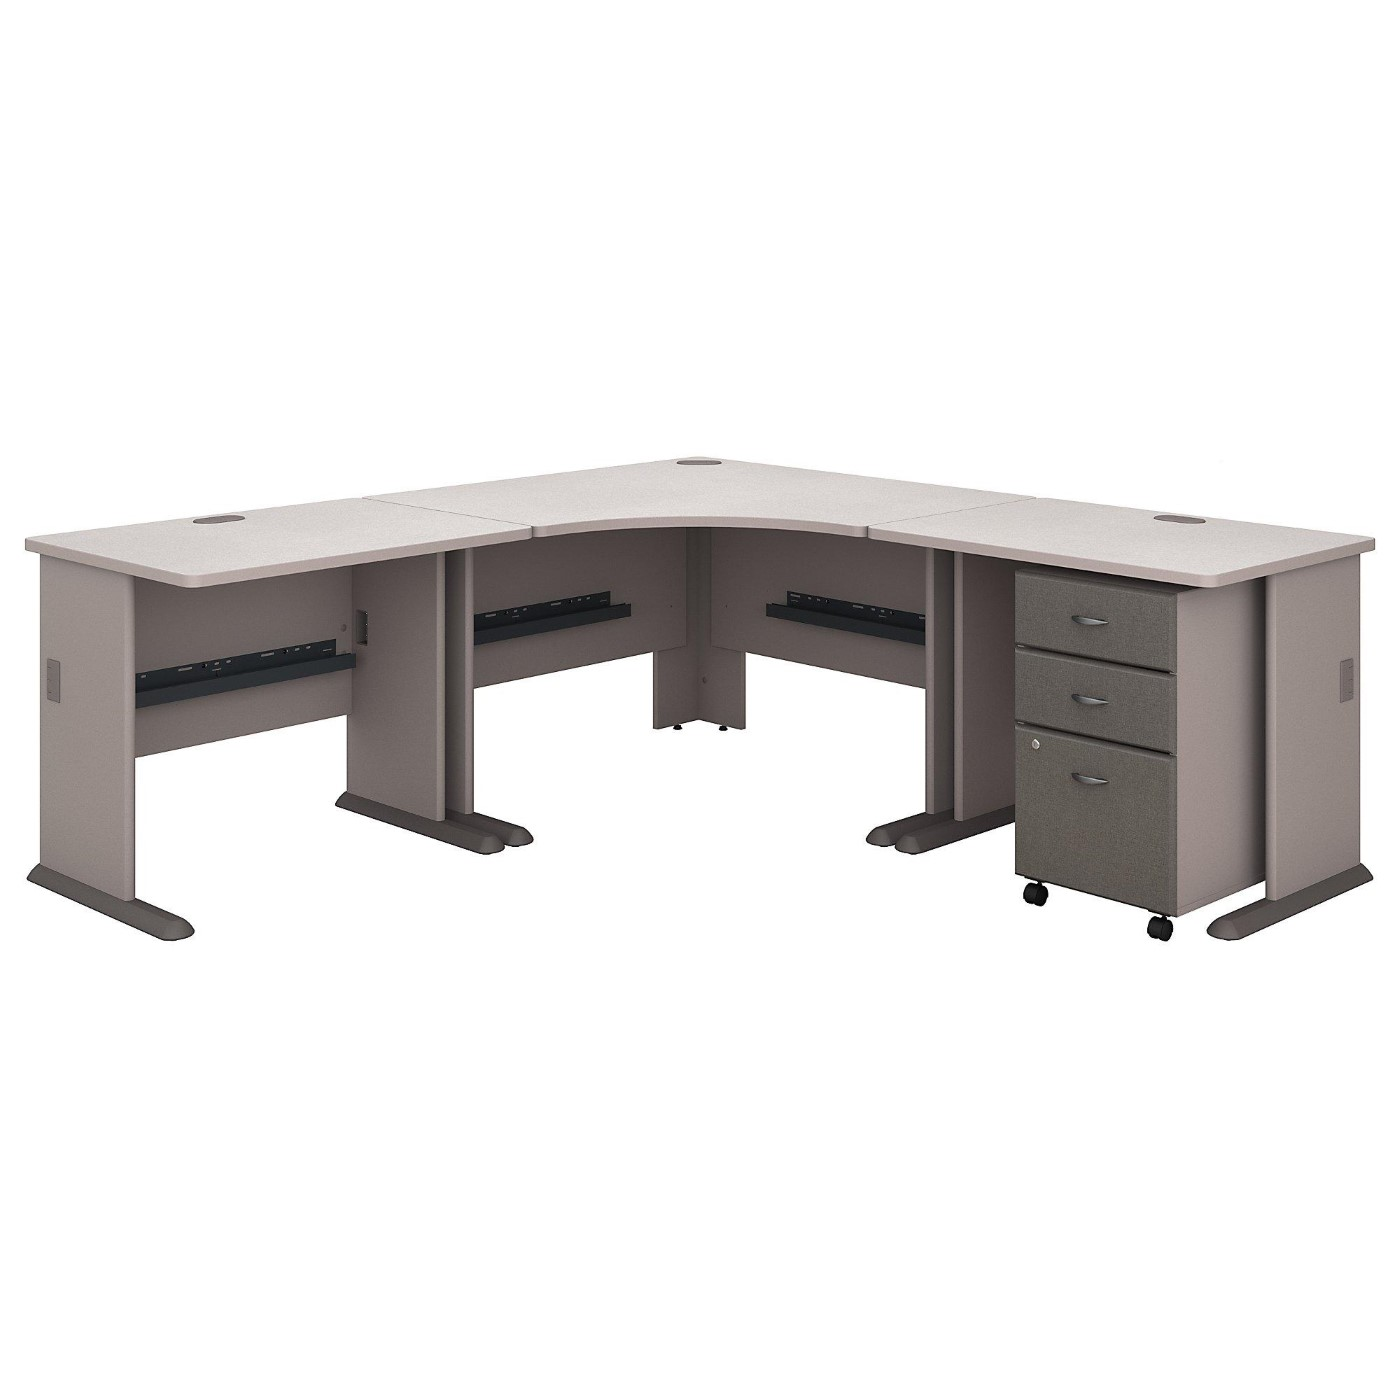 BUSH BUSINESS FURNITURE SERIES A 84W X 84D CORNER DESK WITH MOBILE FILE CABINET. FREE SHIPPING</font></b></font>&#x1F384<font color=red><b>ERGONOMICHOME HOLIDAY SALE - ENDS DEC. 17, 2019</b></font>&#x1F384